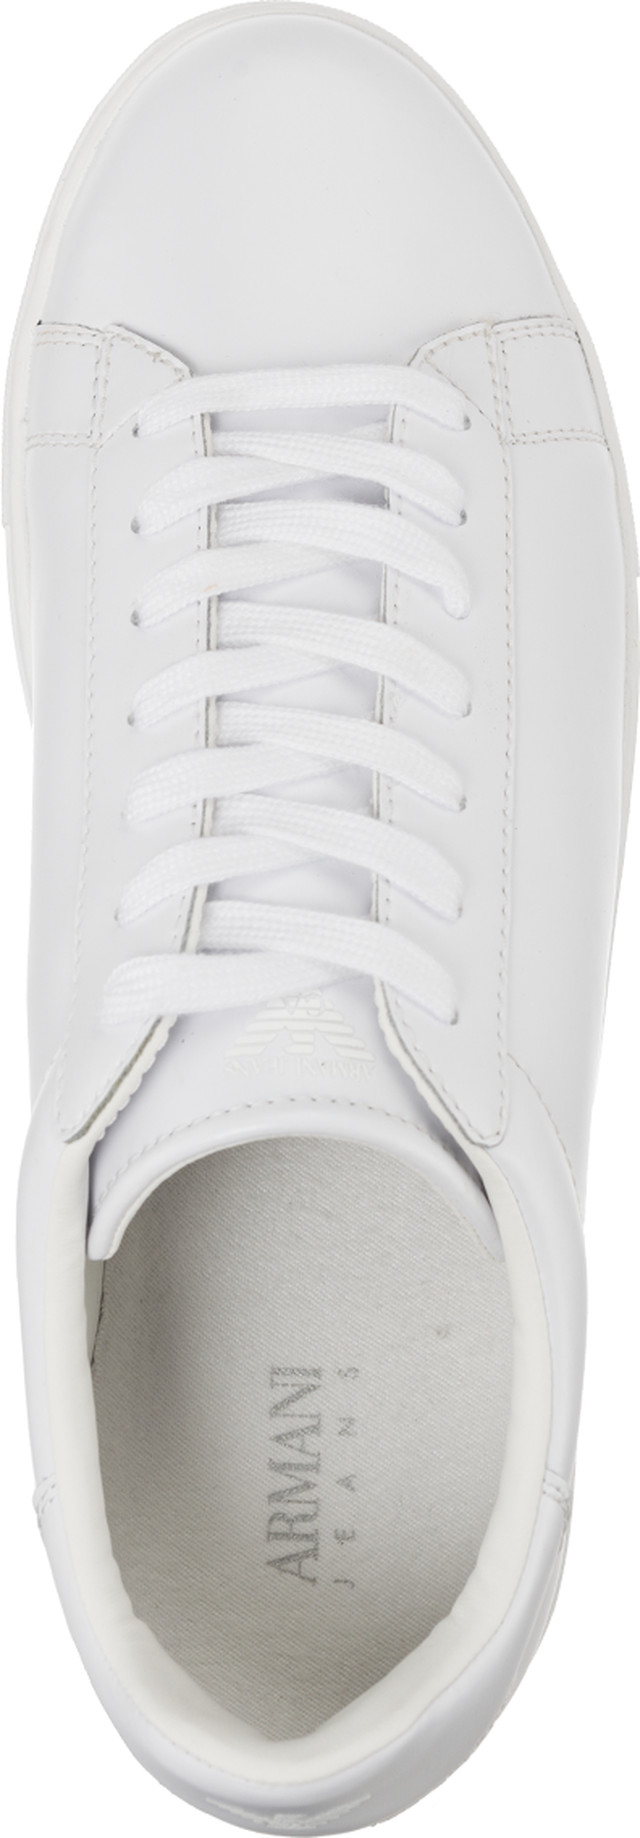 Buty Armani Jeans  <br/><small>Bianco 7A400-00010 </small>